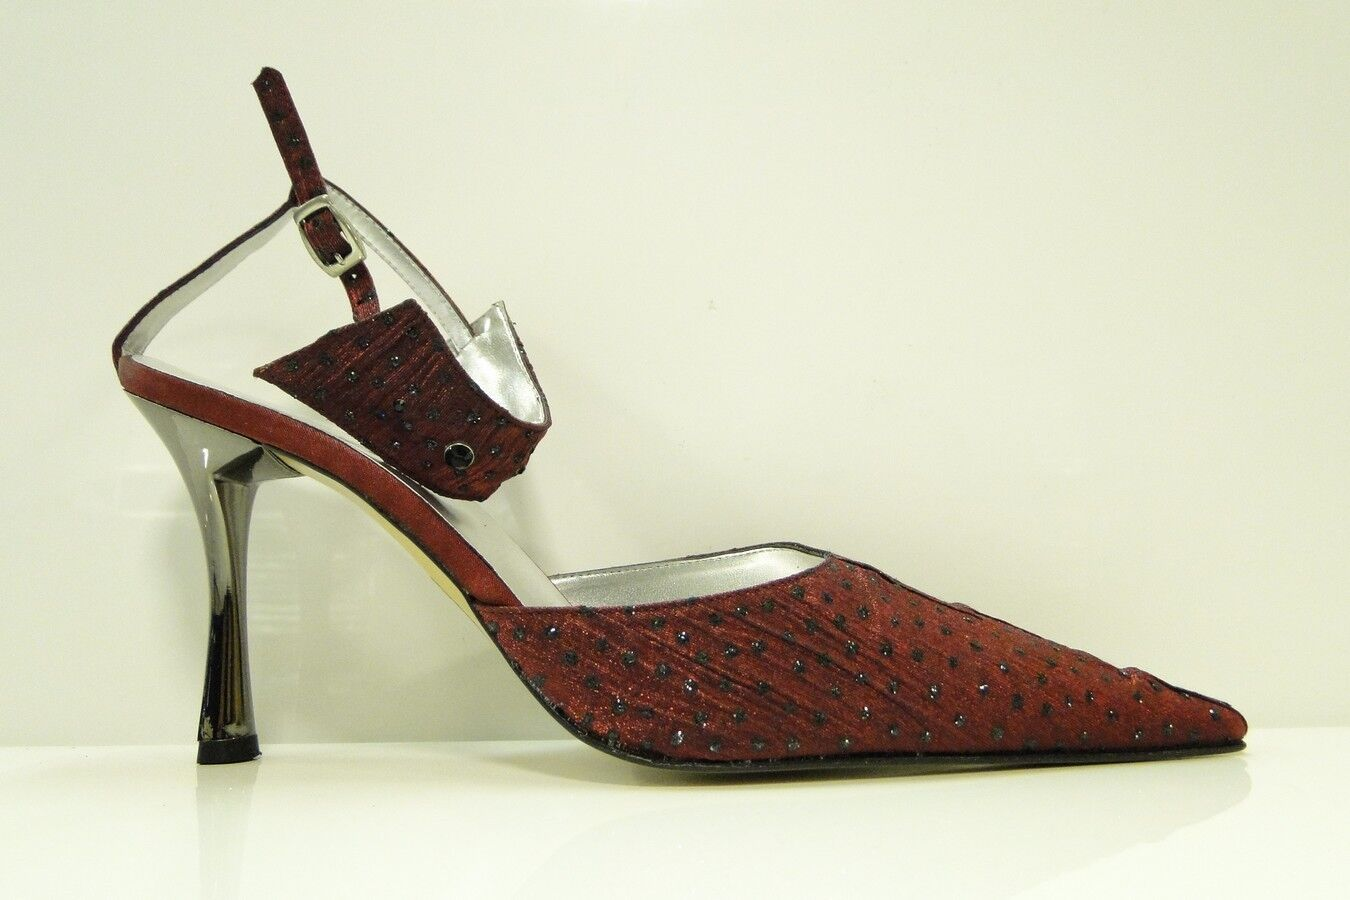 ESINO ITALIAN LADIES SHOES BOHEMES LADIES STRAP COURT SHOES - BORDO - UK 7